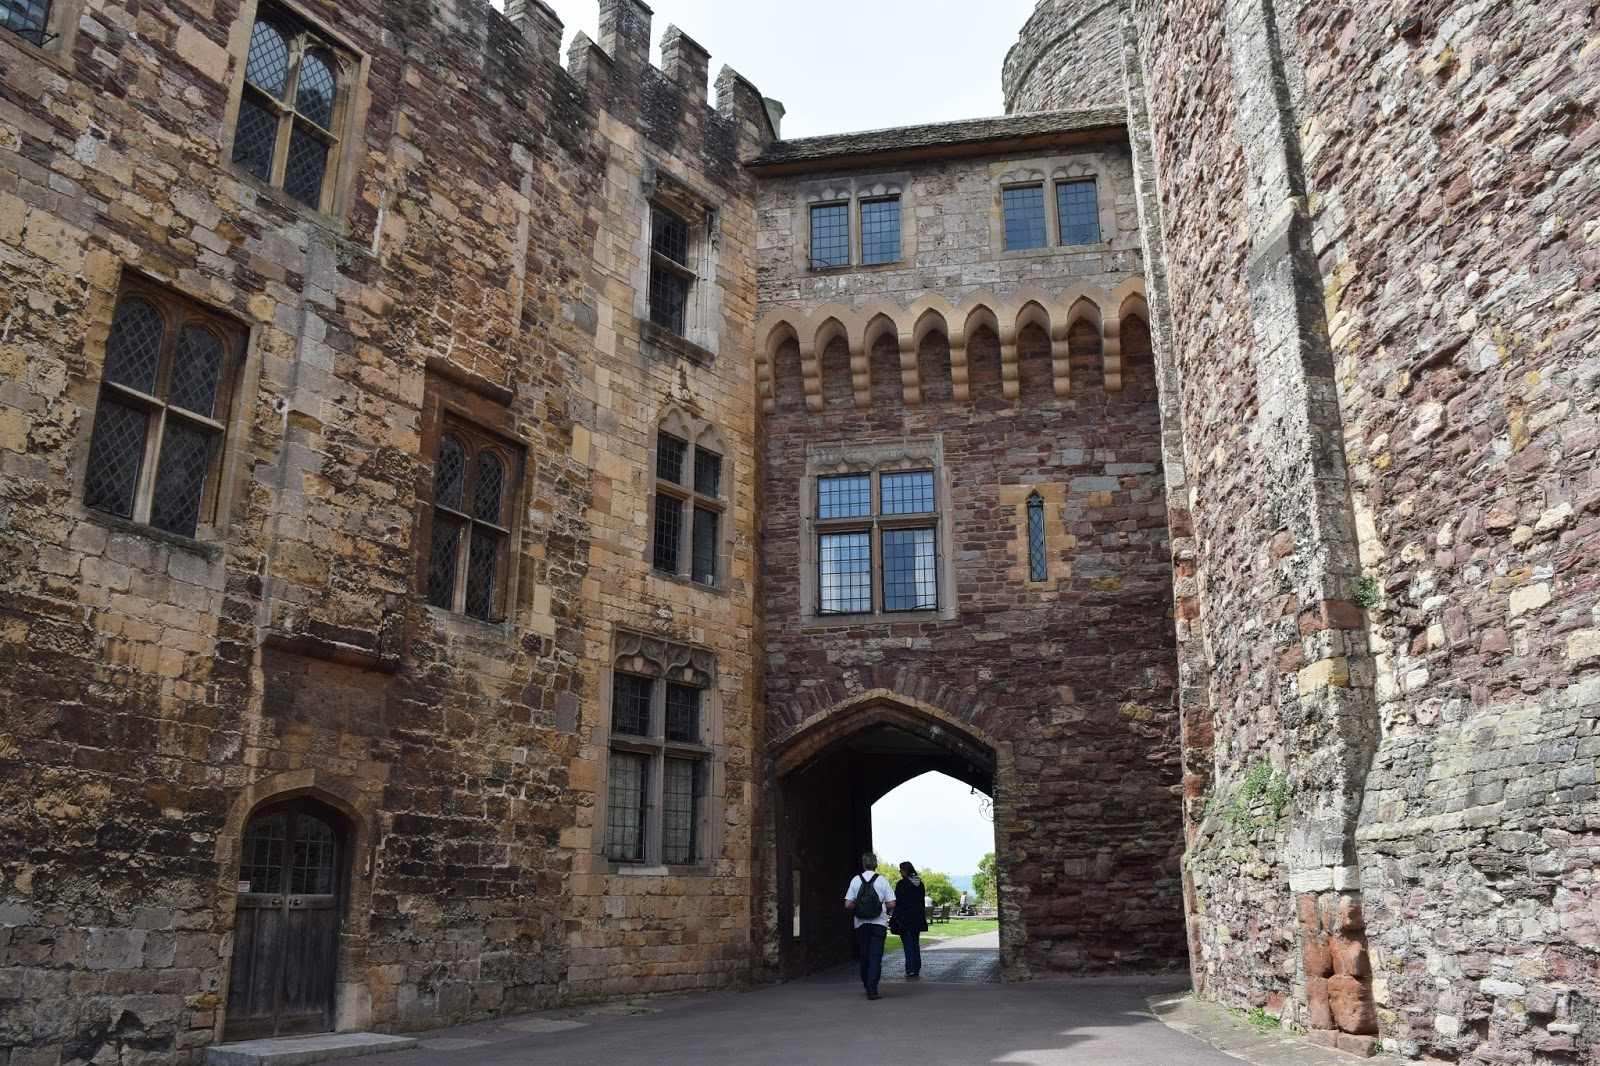 from the courtyard of Berkeley Castle looking up at the old stone walls. directly in front is the entrance to the castle courtyard which I passed through